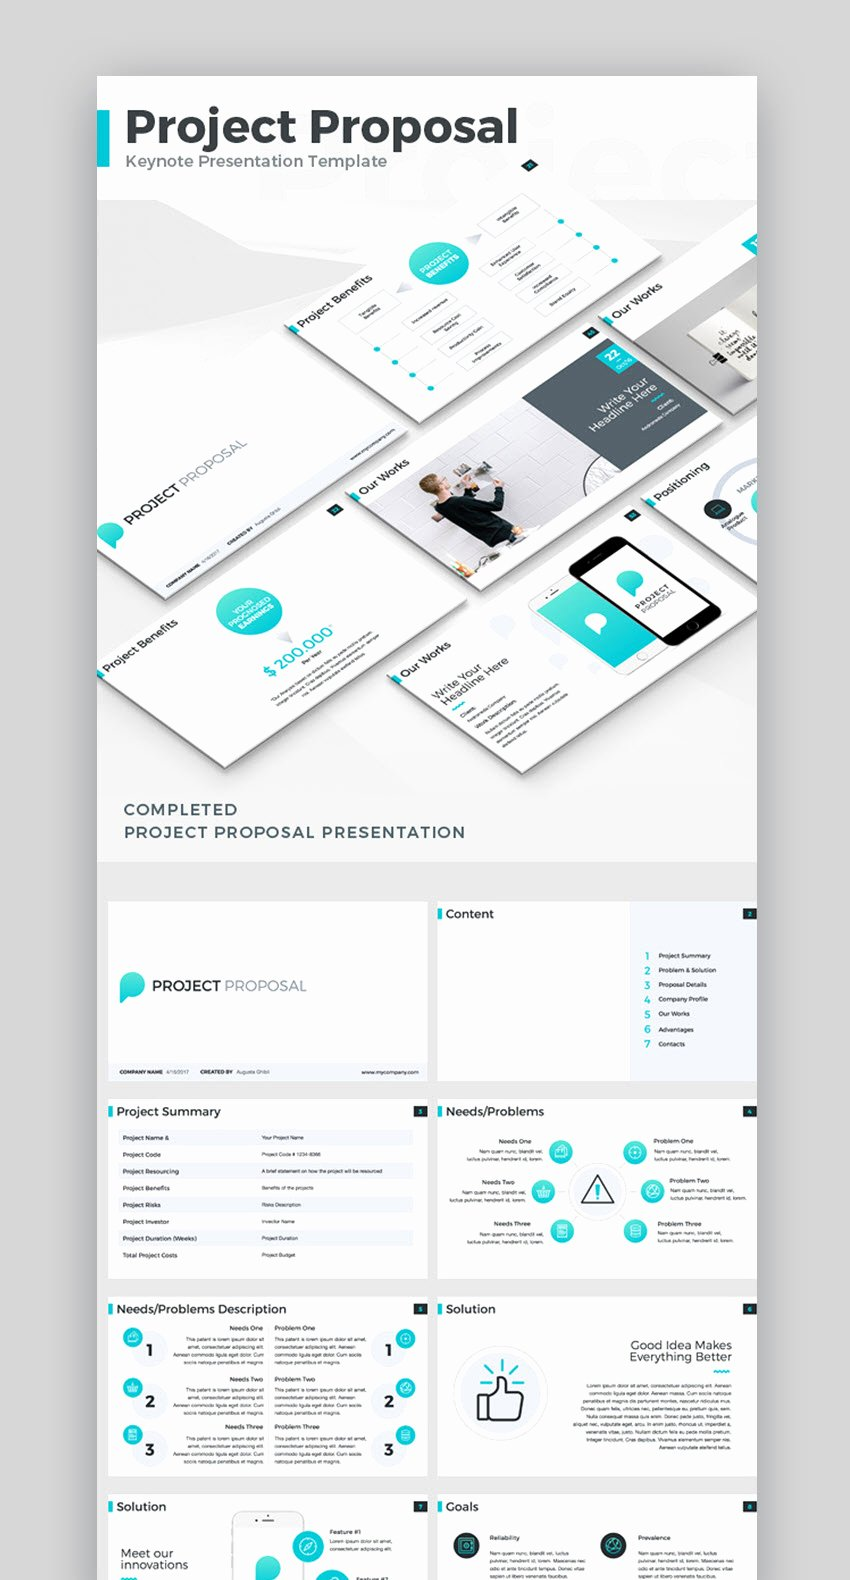 Software Project Proposal Template Fresh 18 Professional Business Project Proposal Templates for 2019